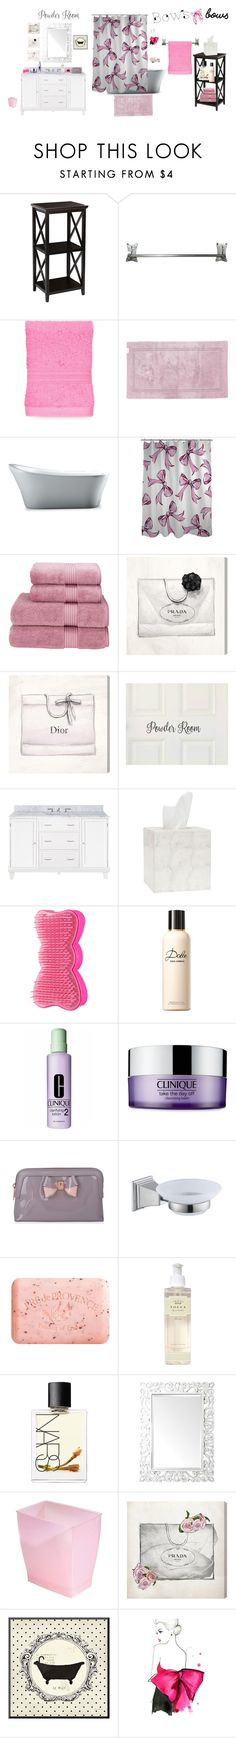 """""""Bath Bows"""" by powdermeperfect ❤ liked on Polyvore featuring interior, interiors, interior design, home, home decor, interior decorating, Flamant, Abyss & Habidecor, One Bella Casa and Christy"""